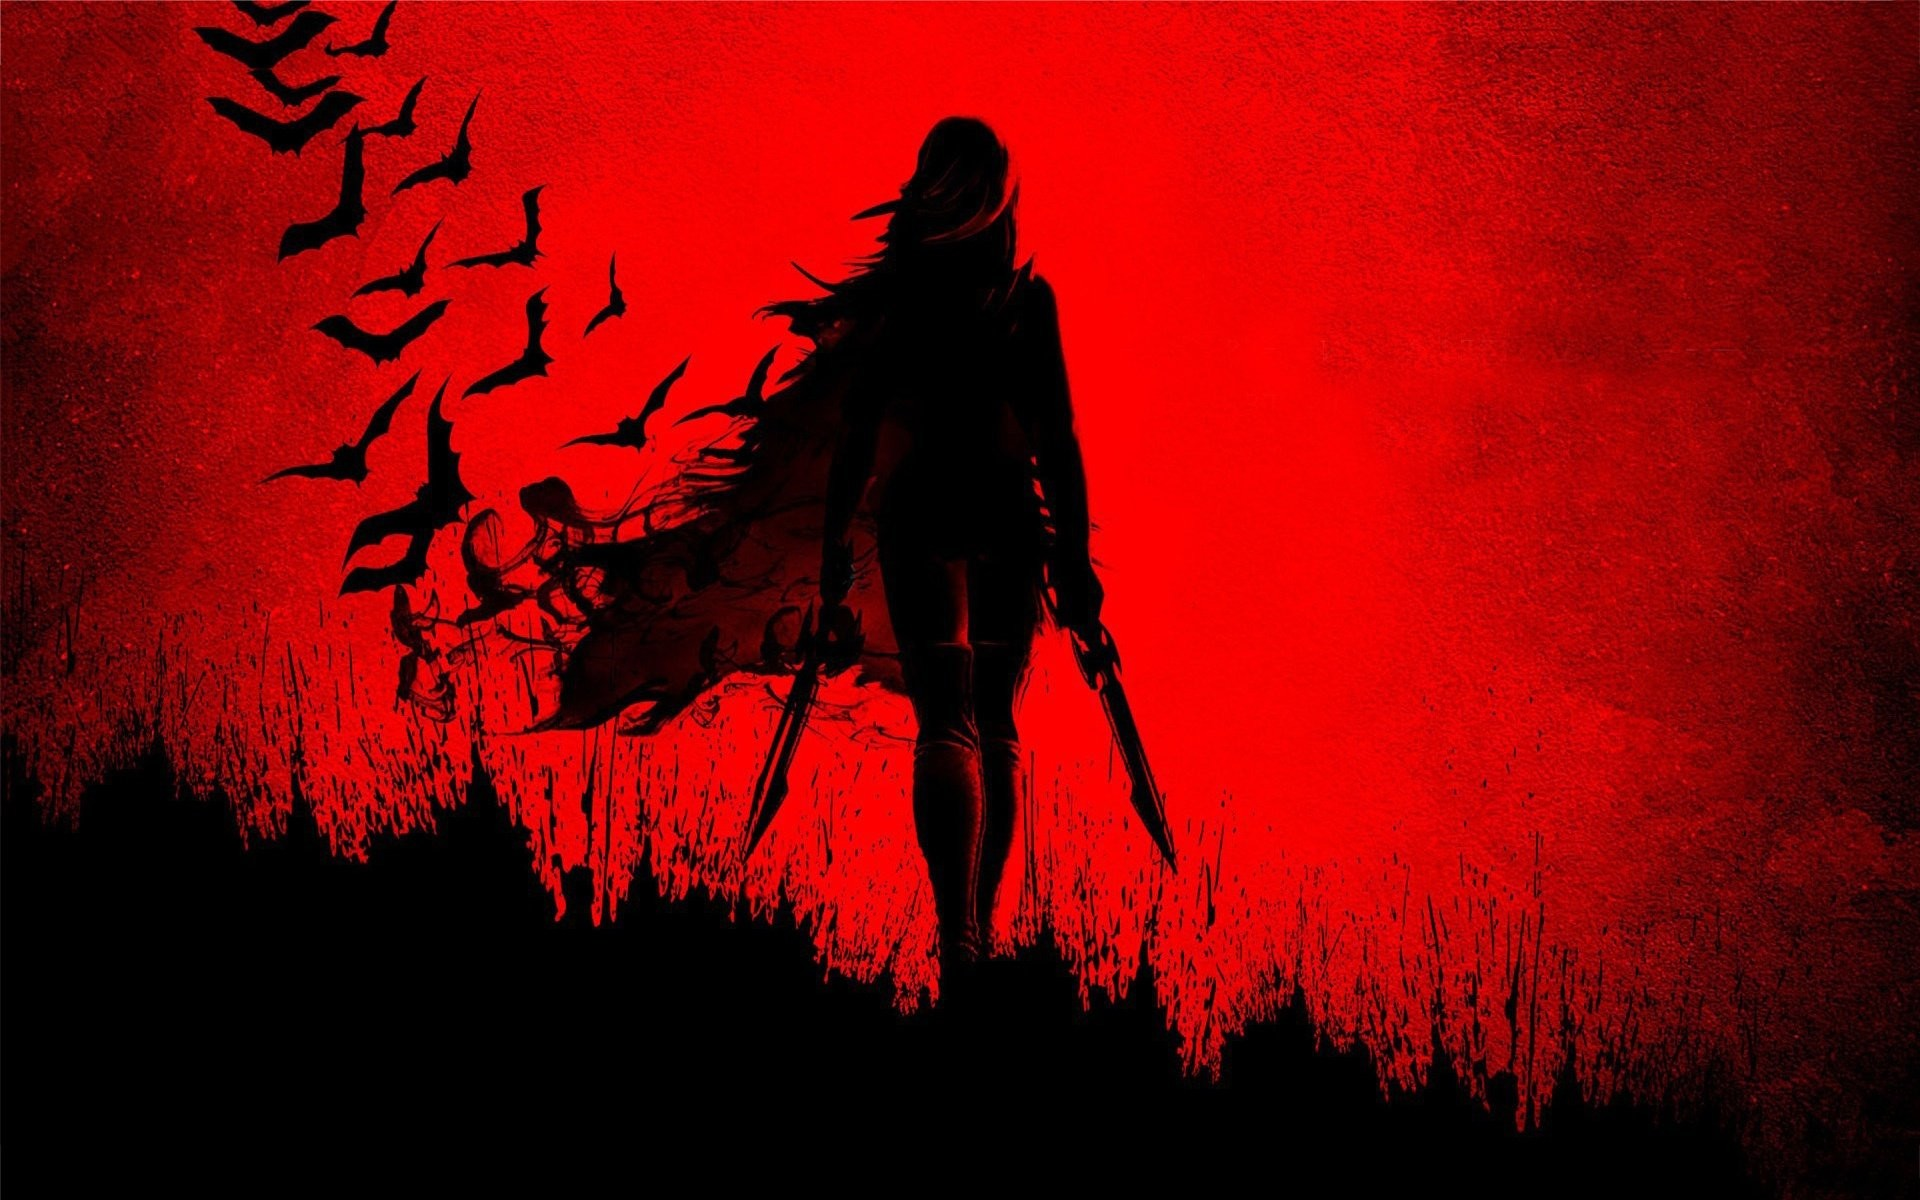 X Blade Girl Shadow Wide Red Sword Anime Wallpaper X